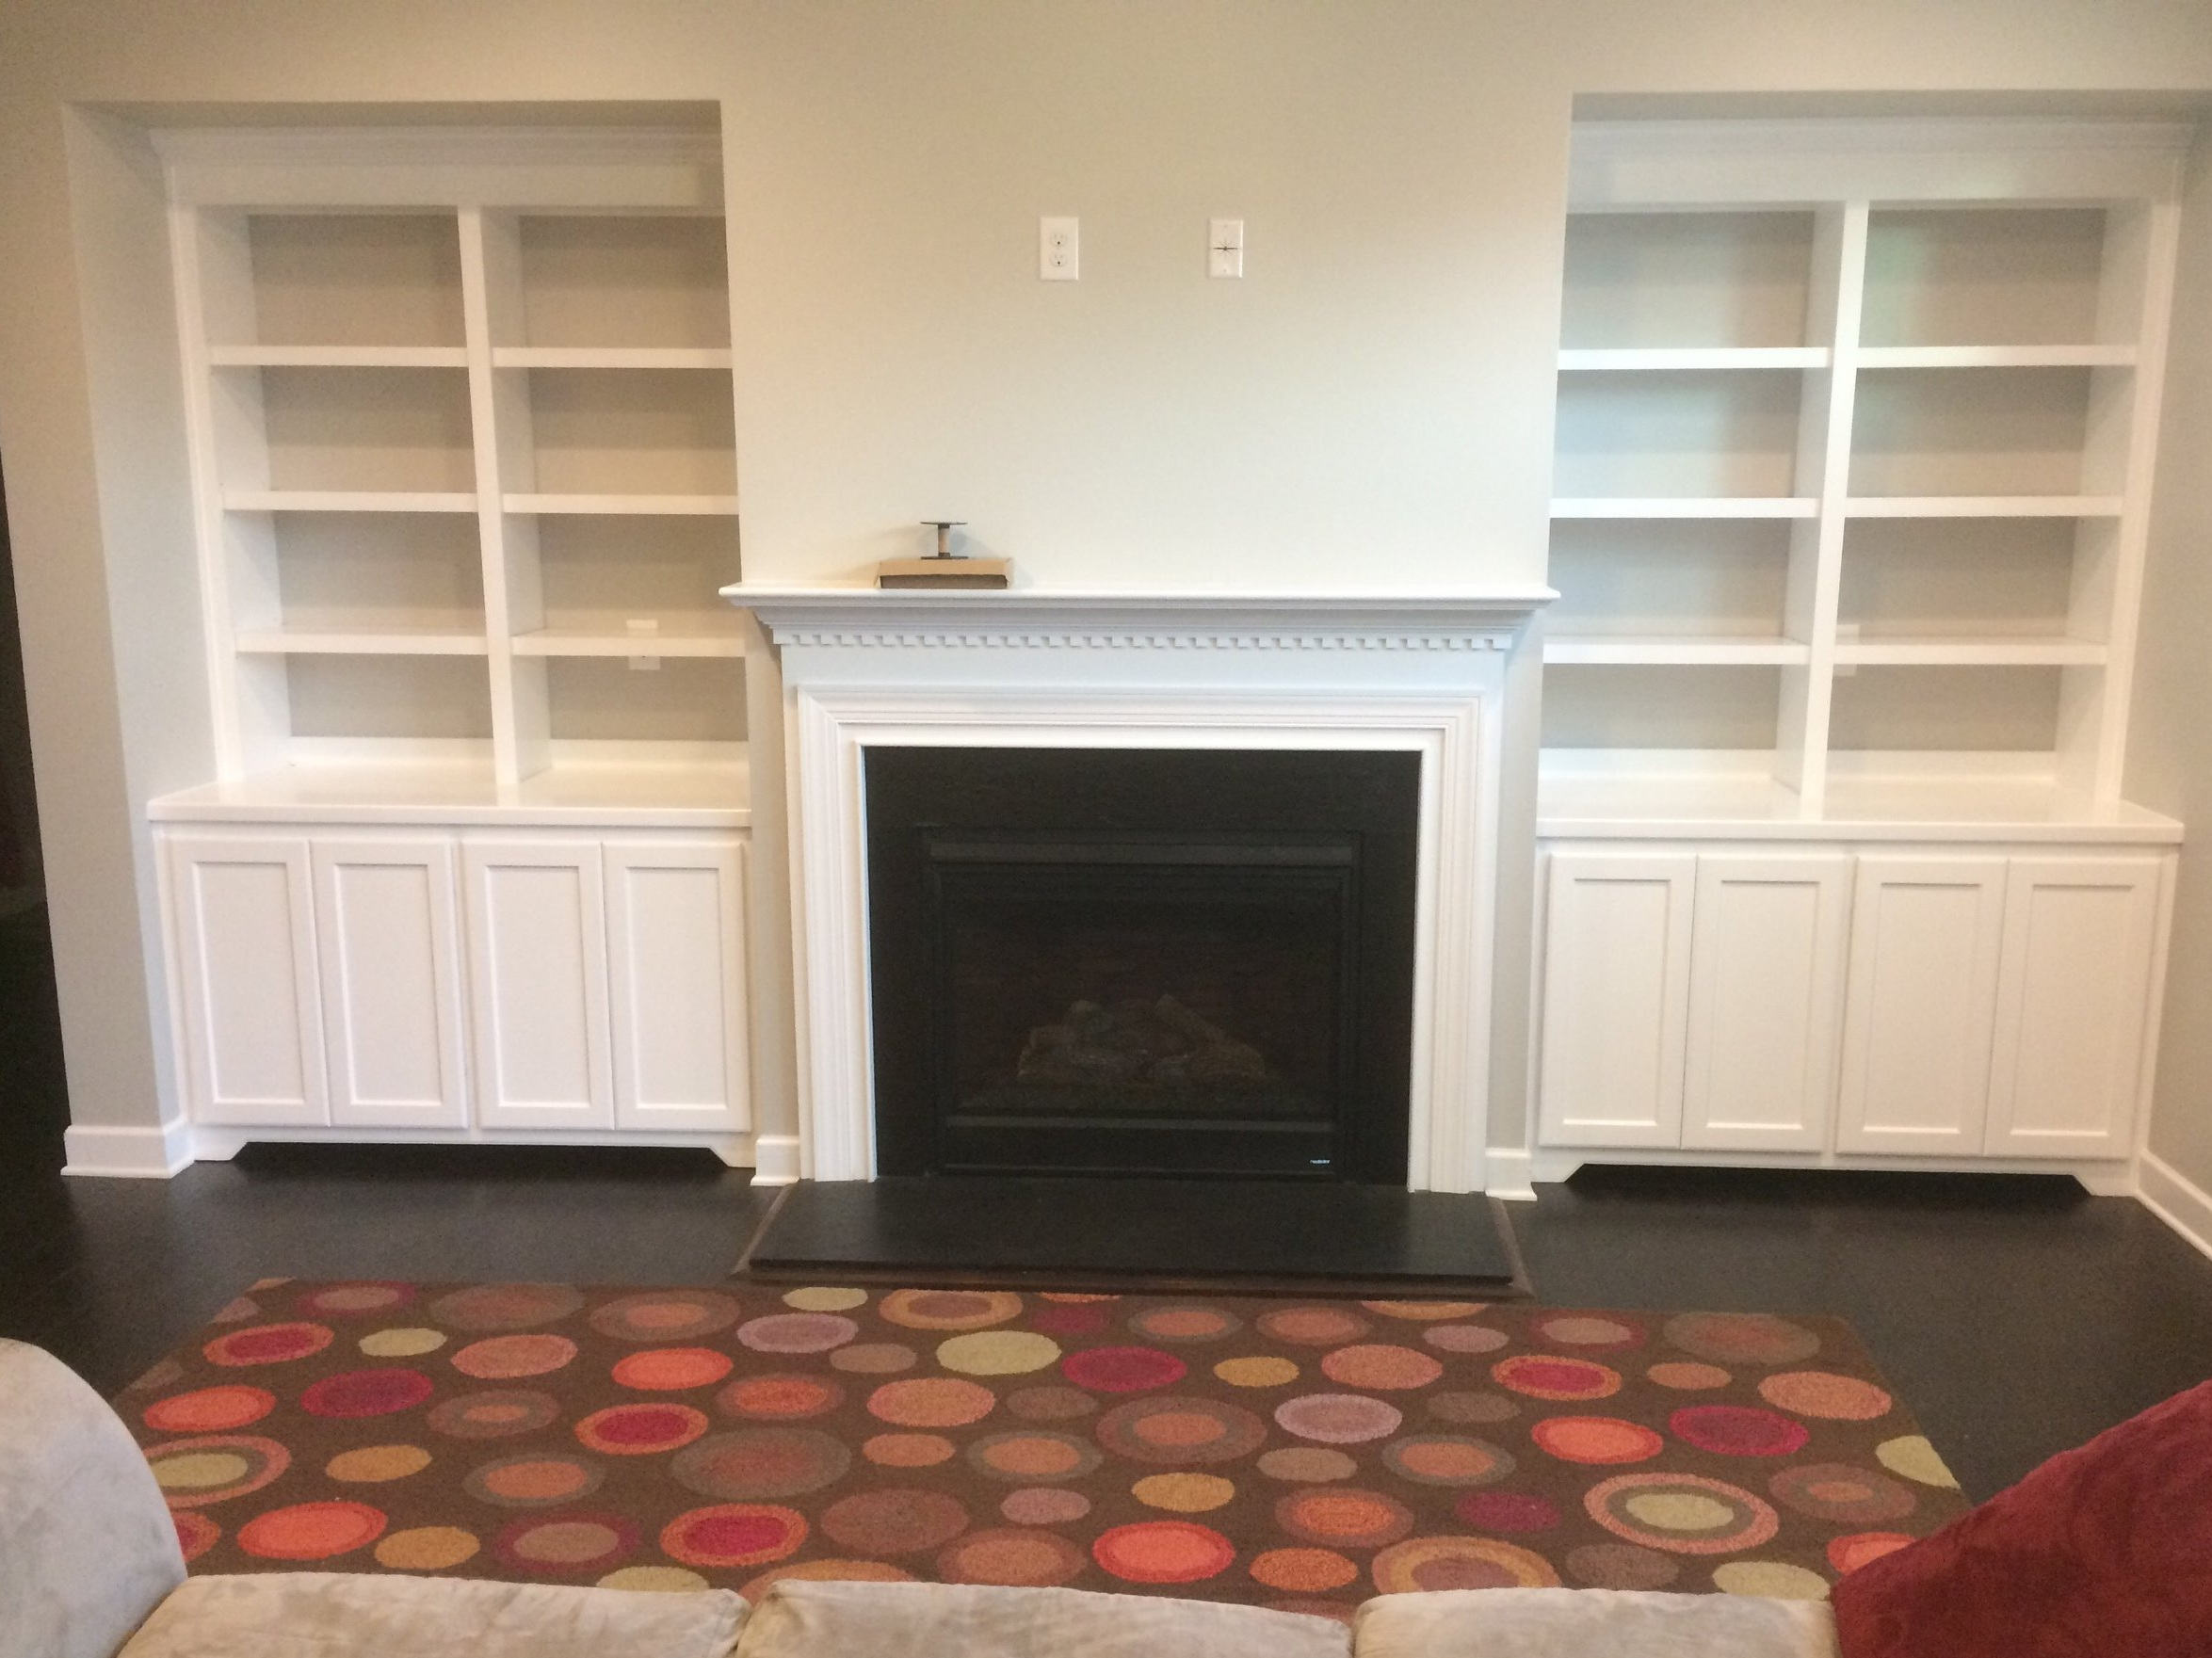 Fireplace Built-Ins with Shaker Doors, Toe-Kick Detail, Header Detail, Adjustable Shelves, and Crown